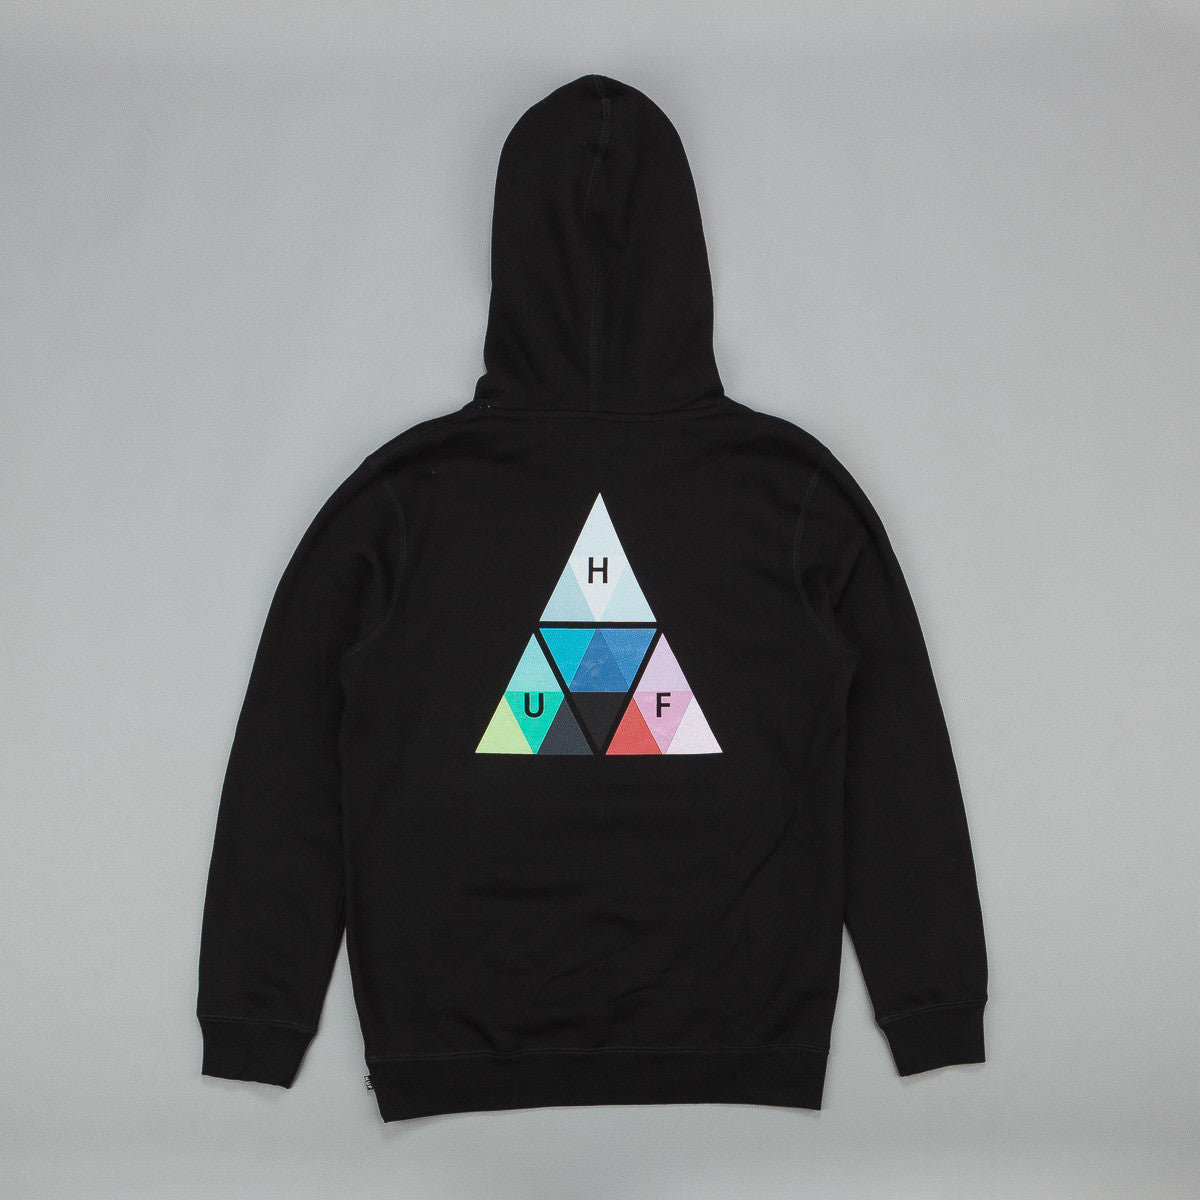 HUF Triangle Prism Hooded Sweatshirt - Black